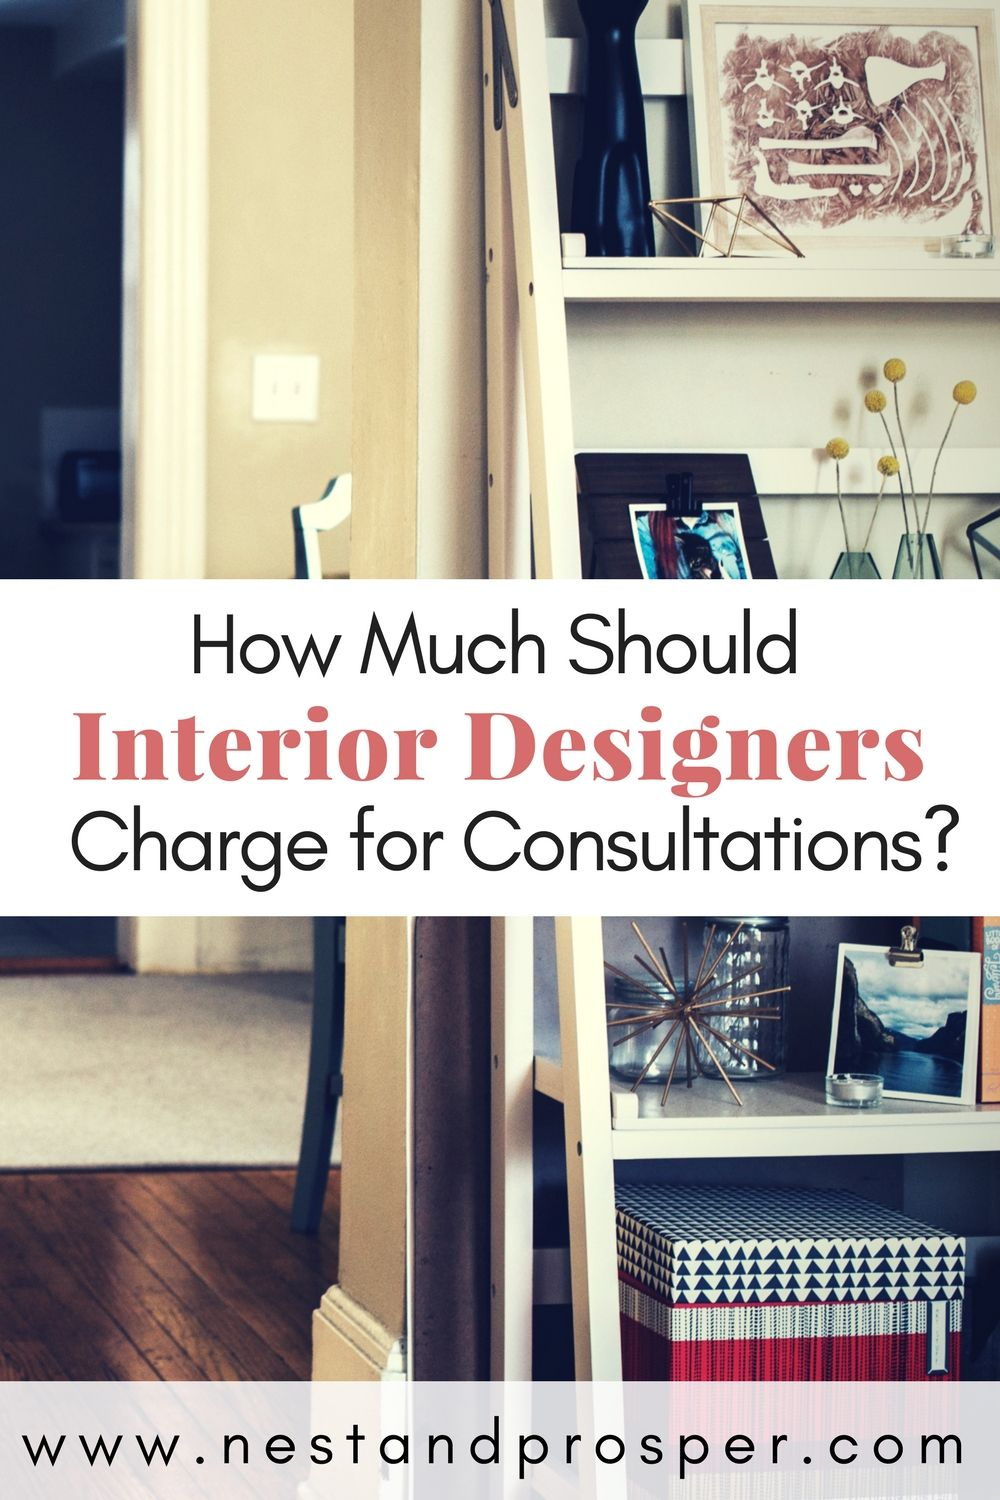 If You Are An Interior Designer, You Have Probably Struggled With How Much  To Charge For Consultations. You Donu0027t Want To Waste Your Time With People  Who ...